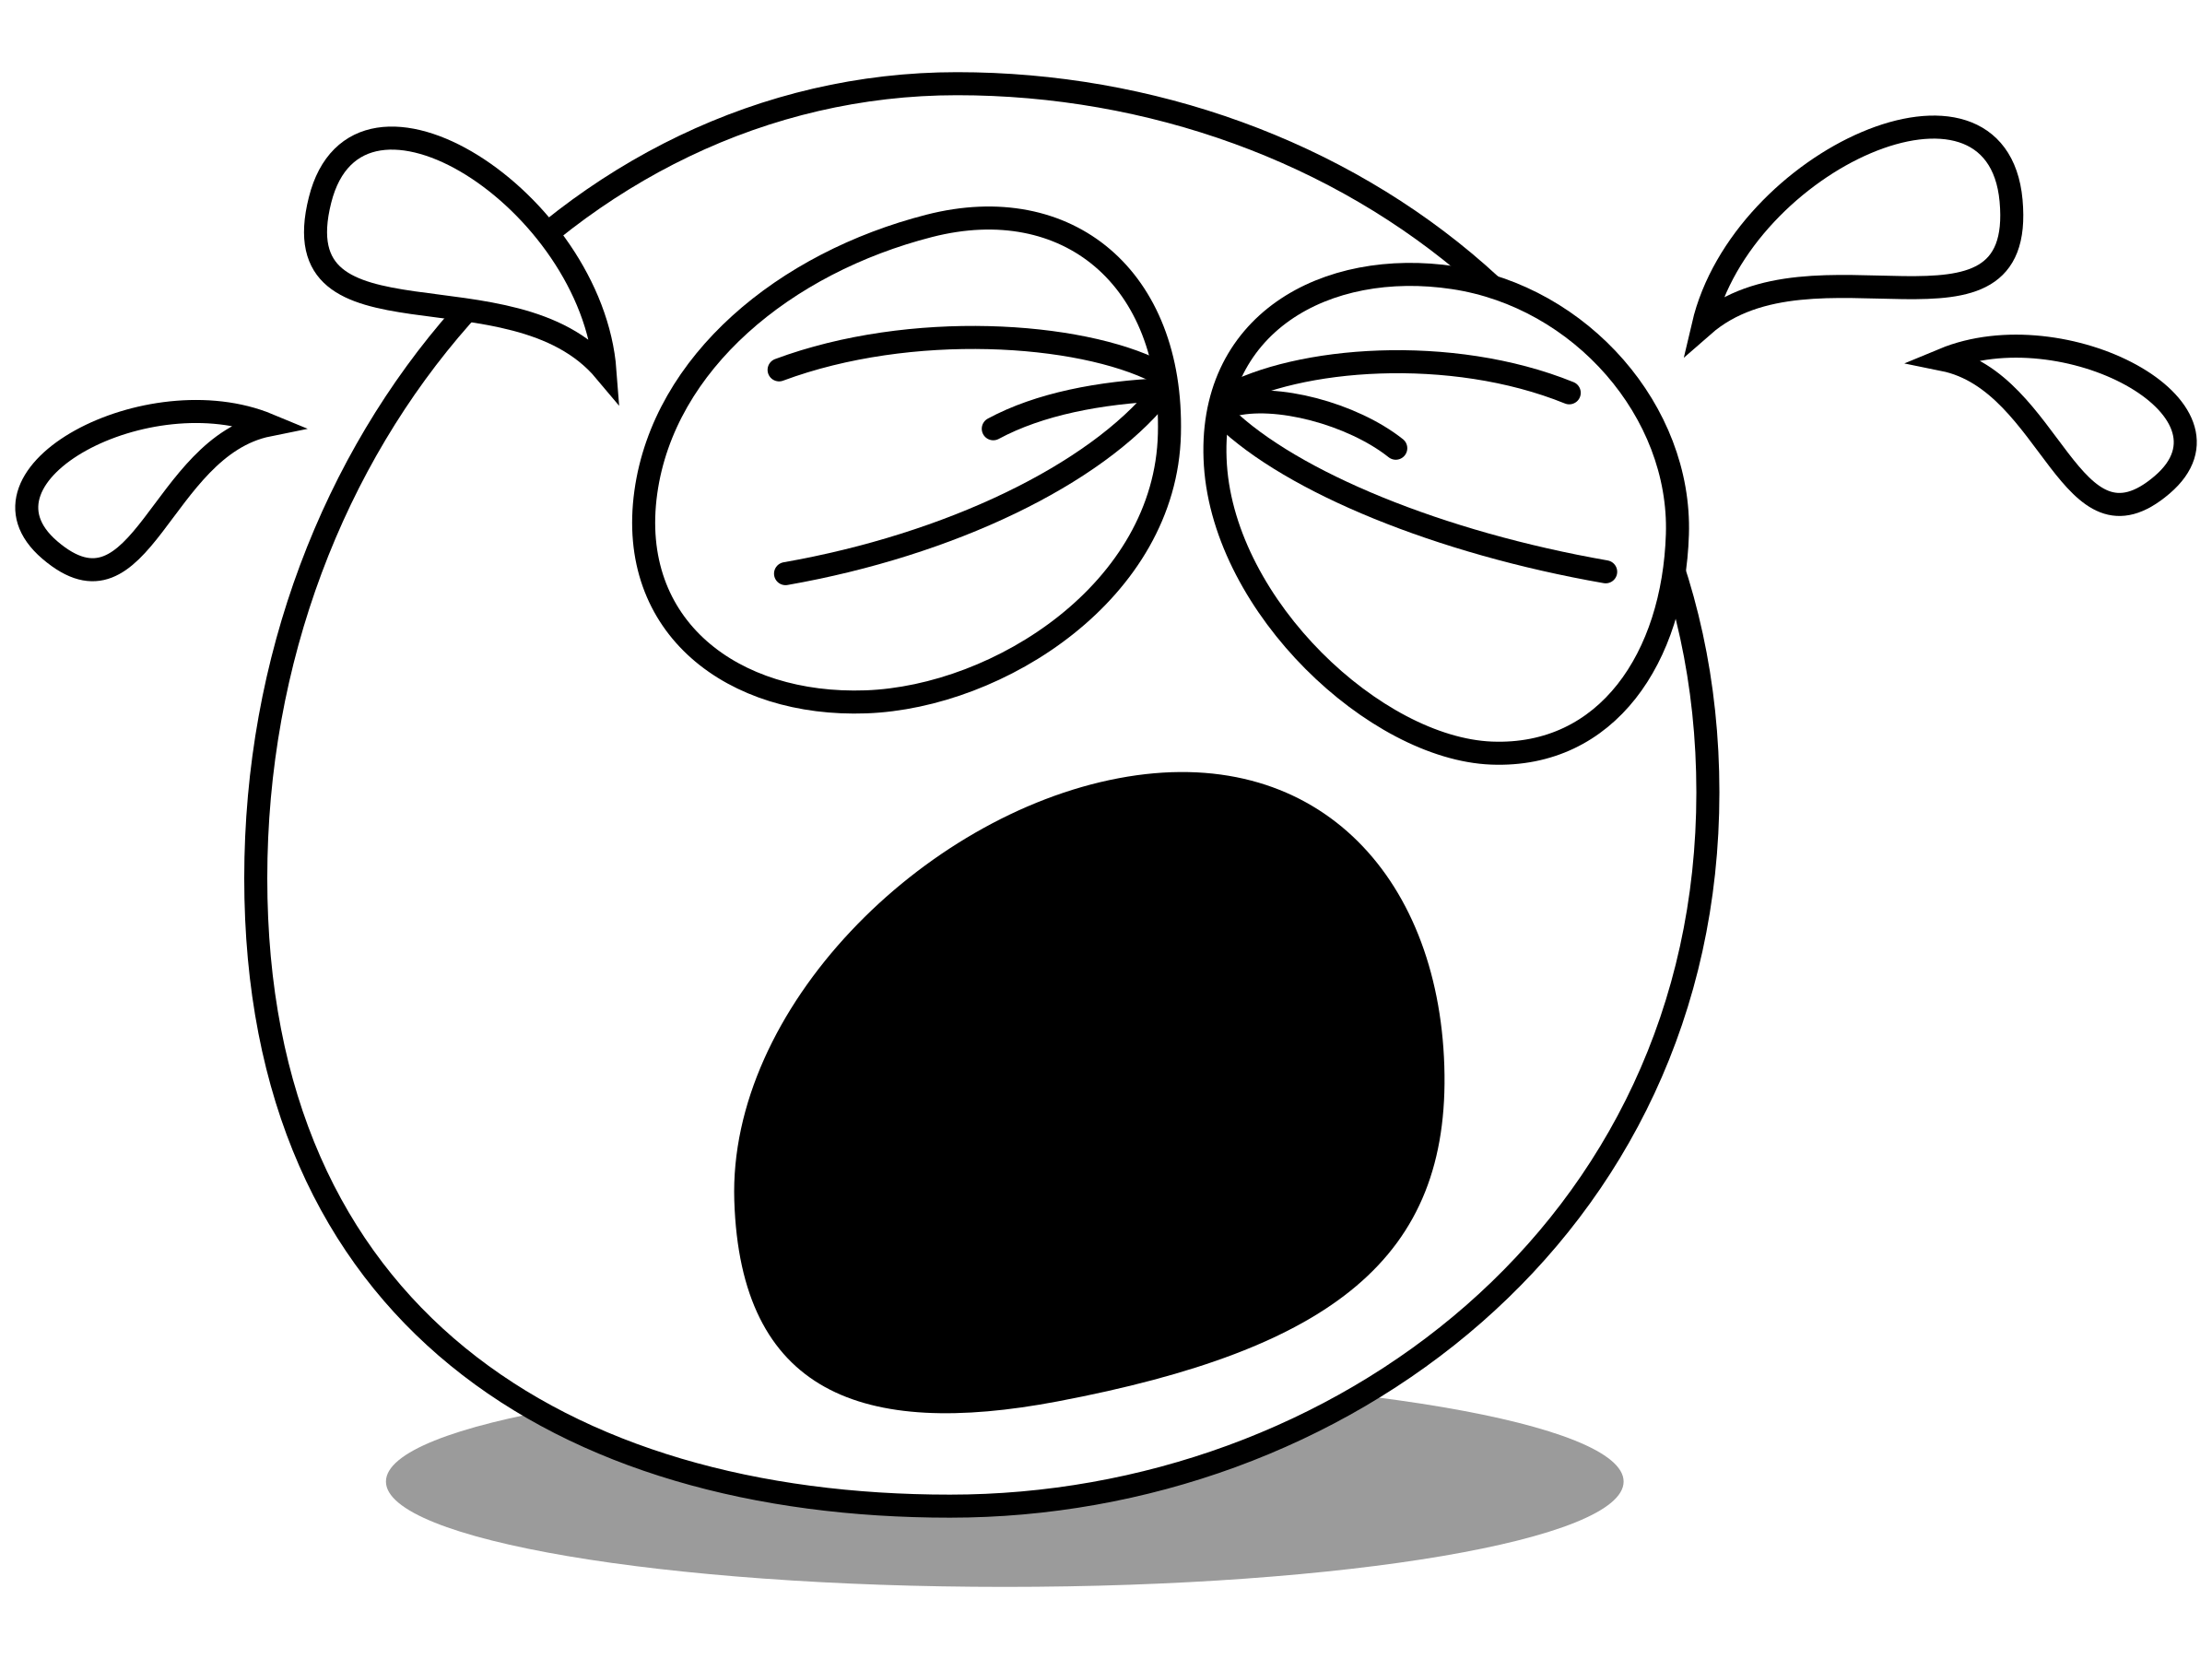 Buddy crying big image. Cry clipart black and white